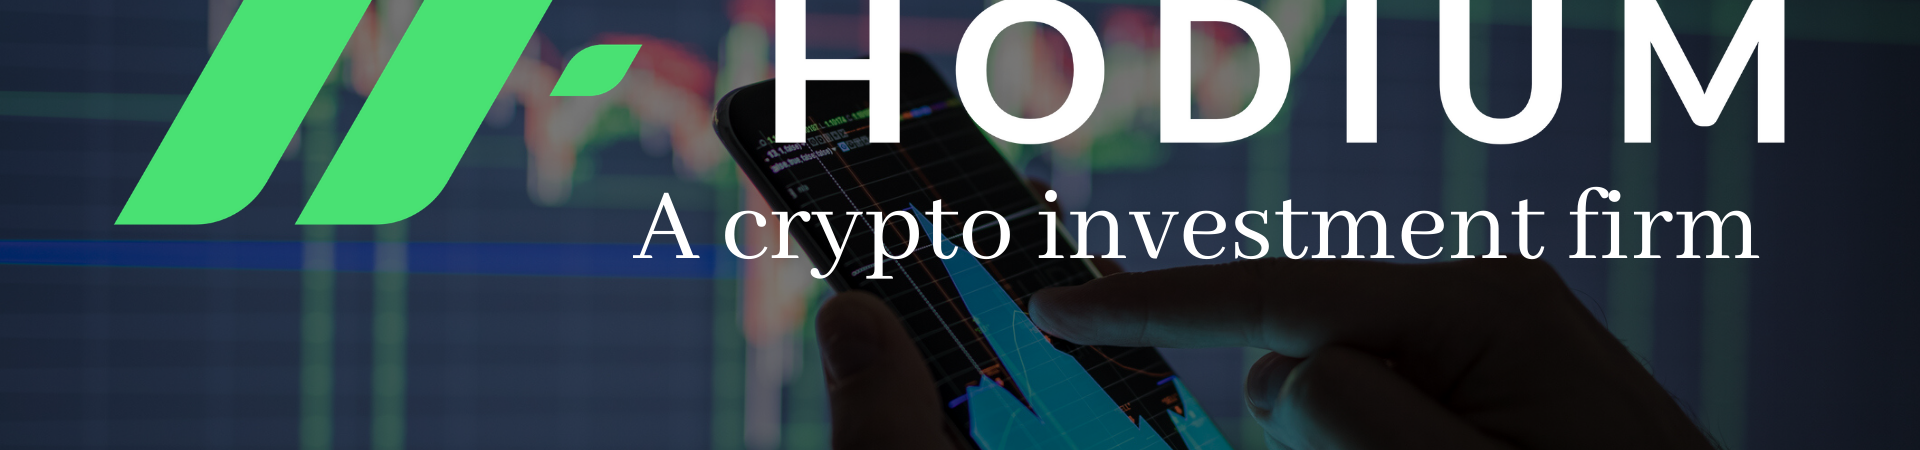 Beat the Crypto Market by Hodium Investment Firm and Generate Daily Returns